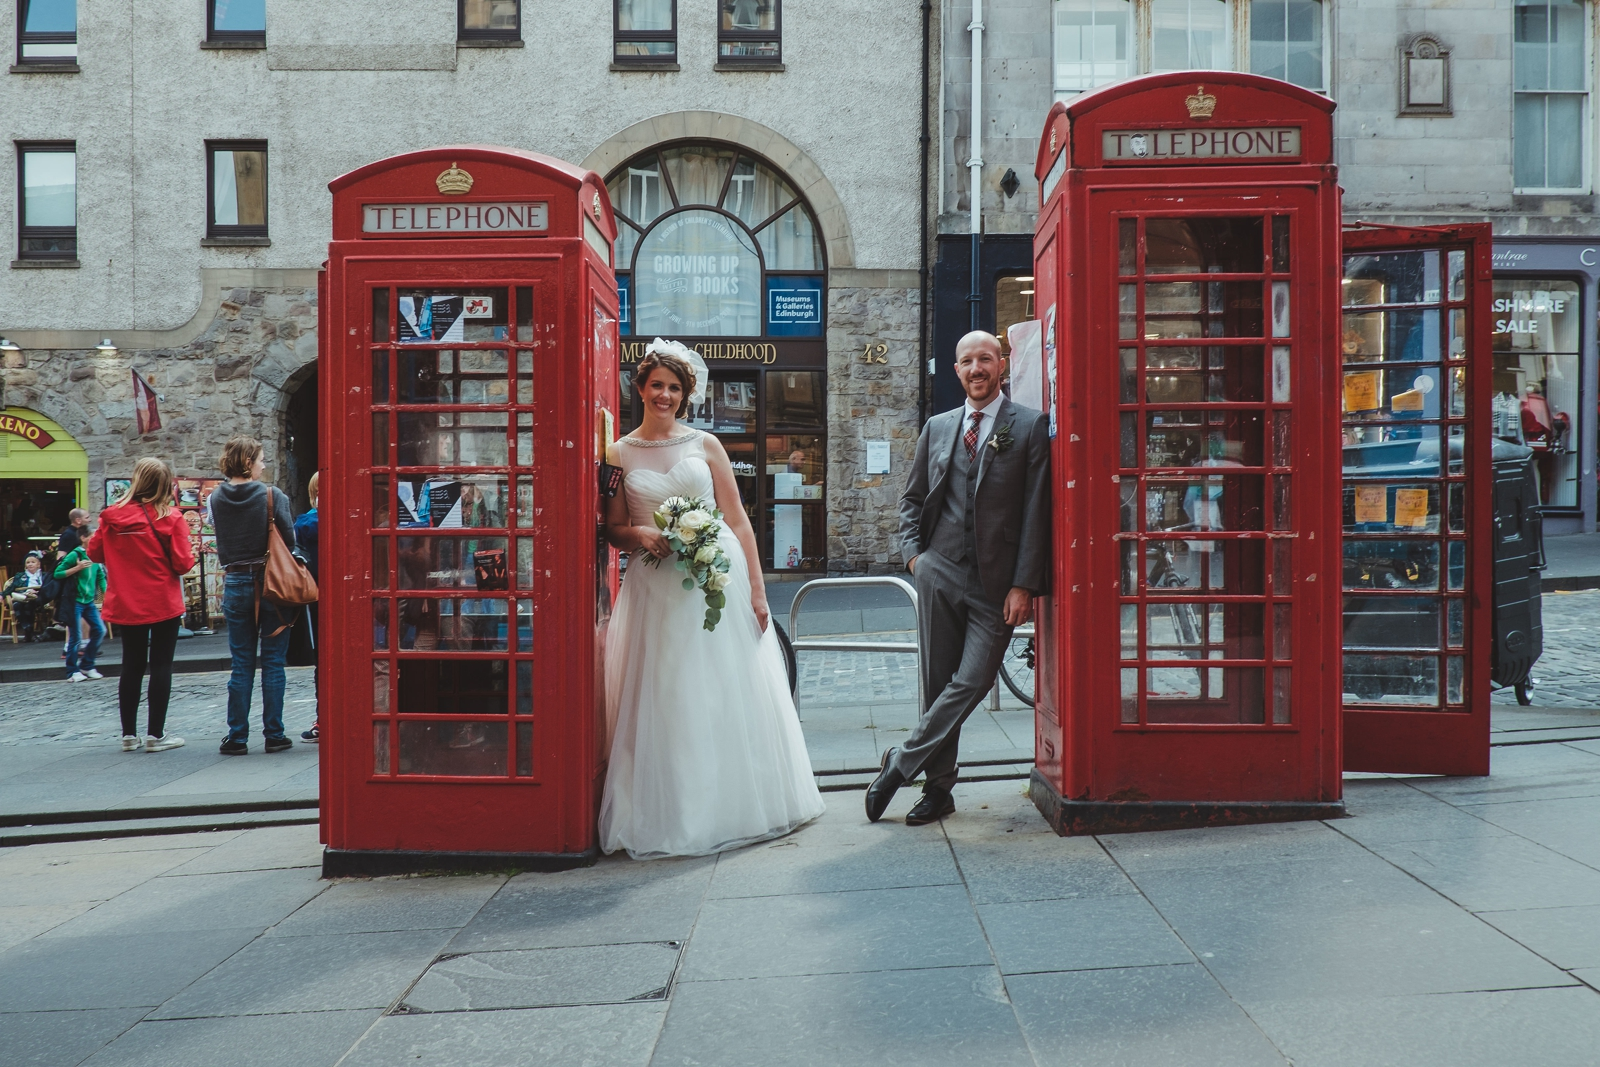 Angela___Andy_s_Edinburgh_elopement_by_Barry_Forshaw_0283.jpg